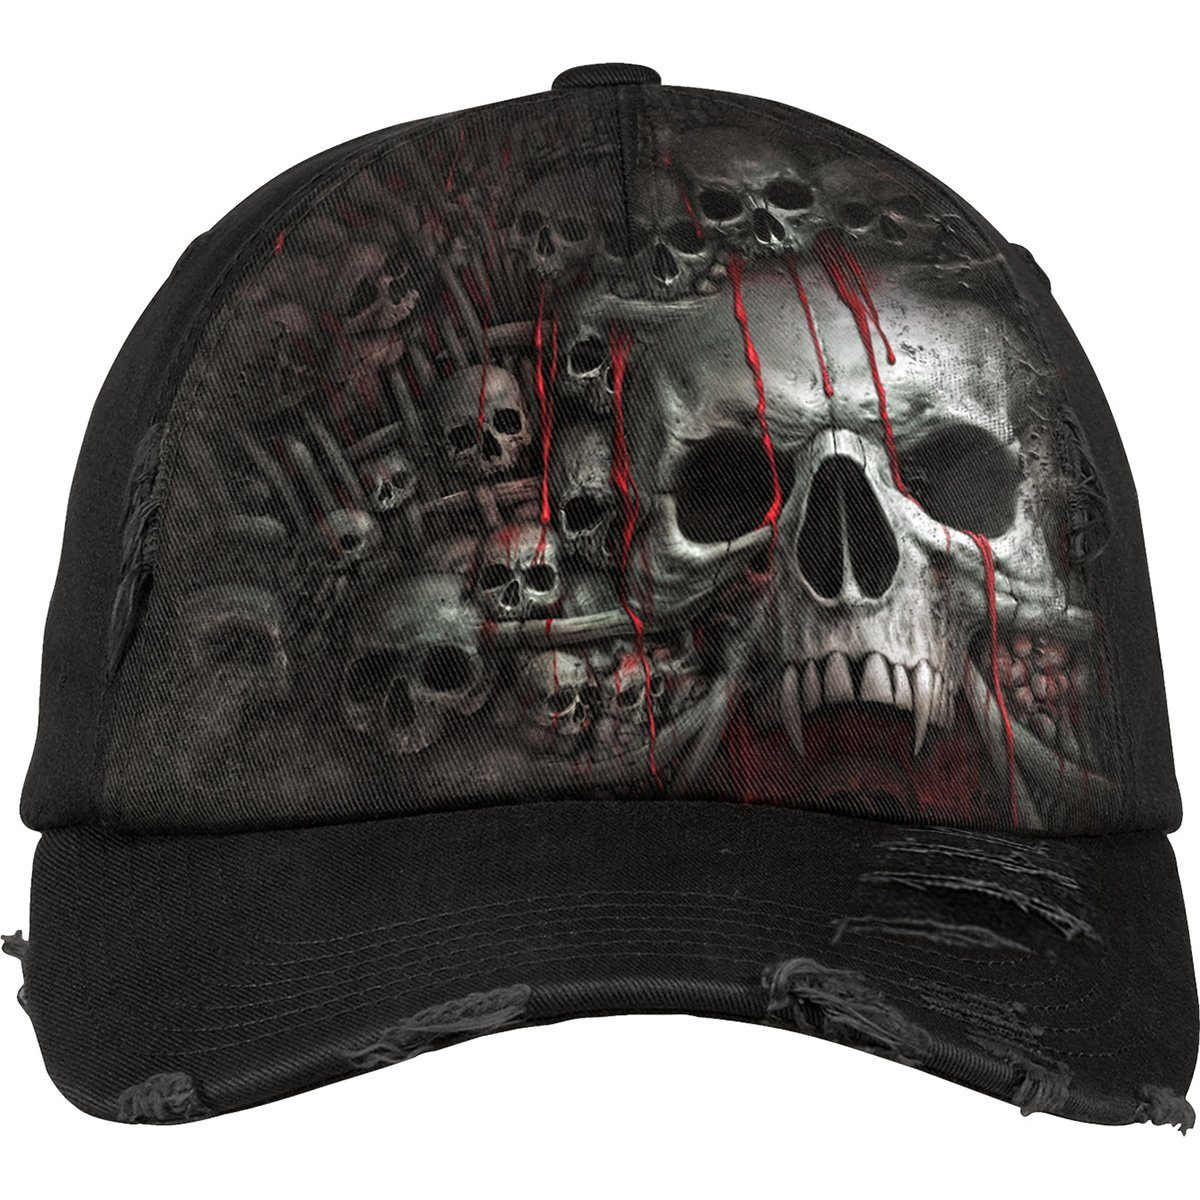 DEATH RIBS - Skull and Gore Baseball Cap - Rebels Depot